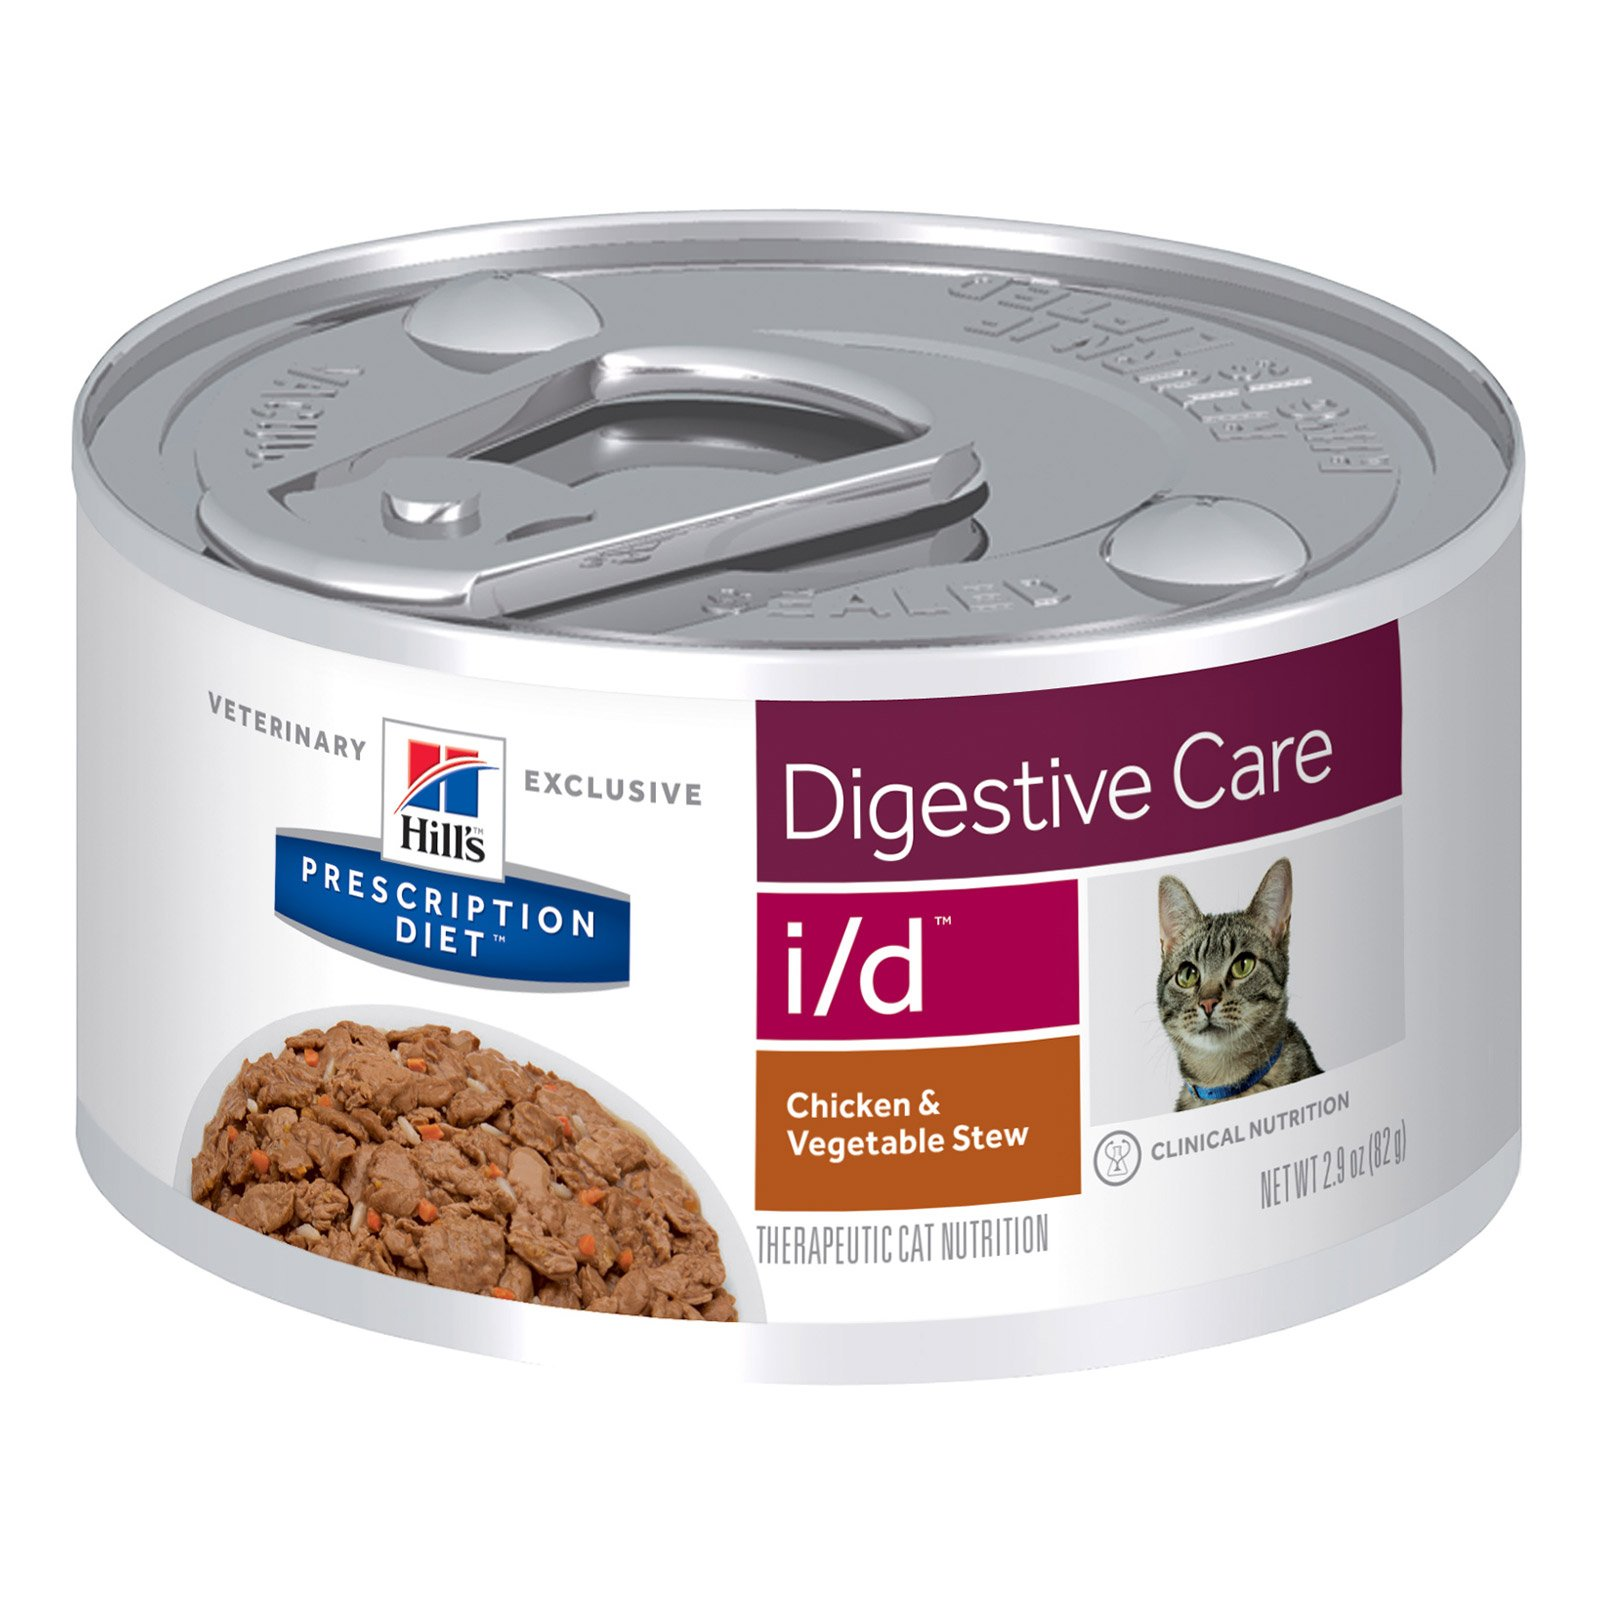 Hill's Prescription Diet i/d Digestive Care Canned Cat Food 82 gm NEW chicken & vegetable stew flavour